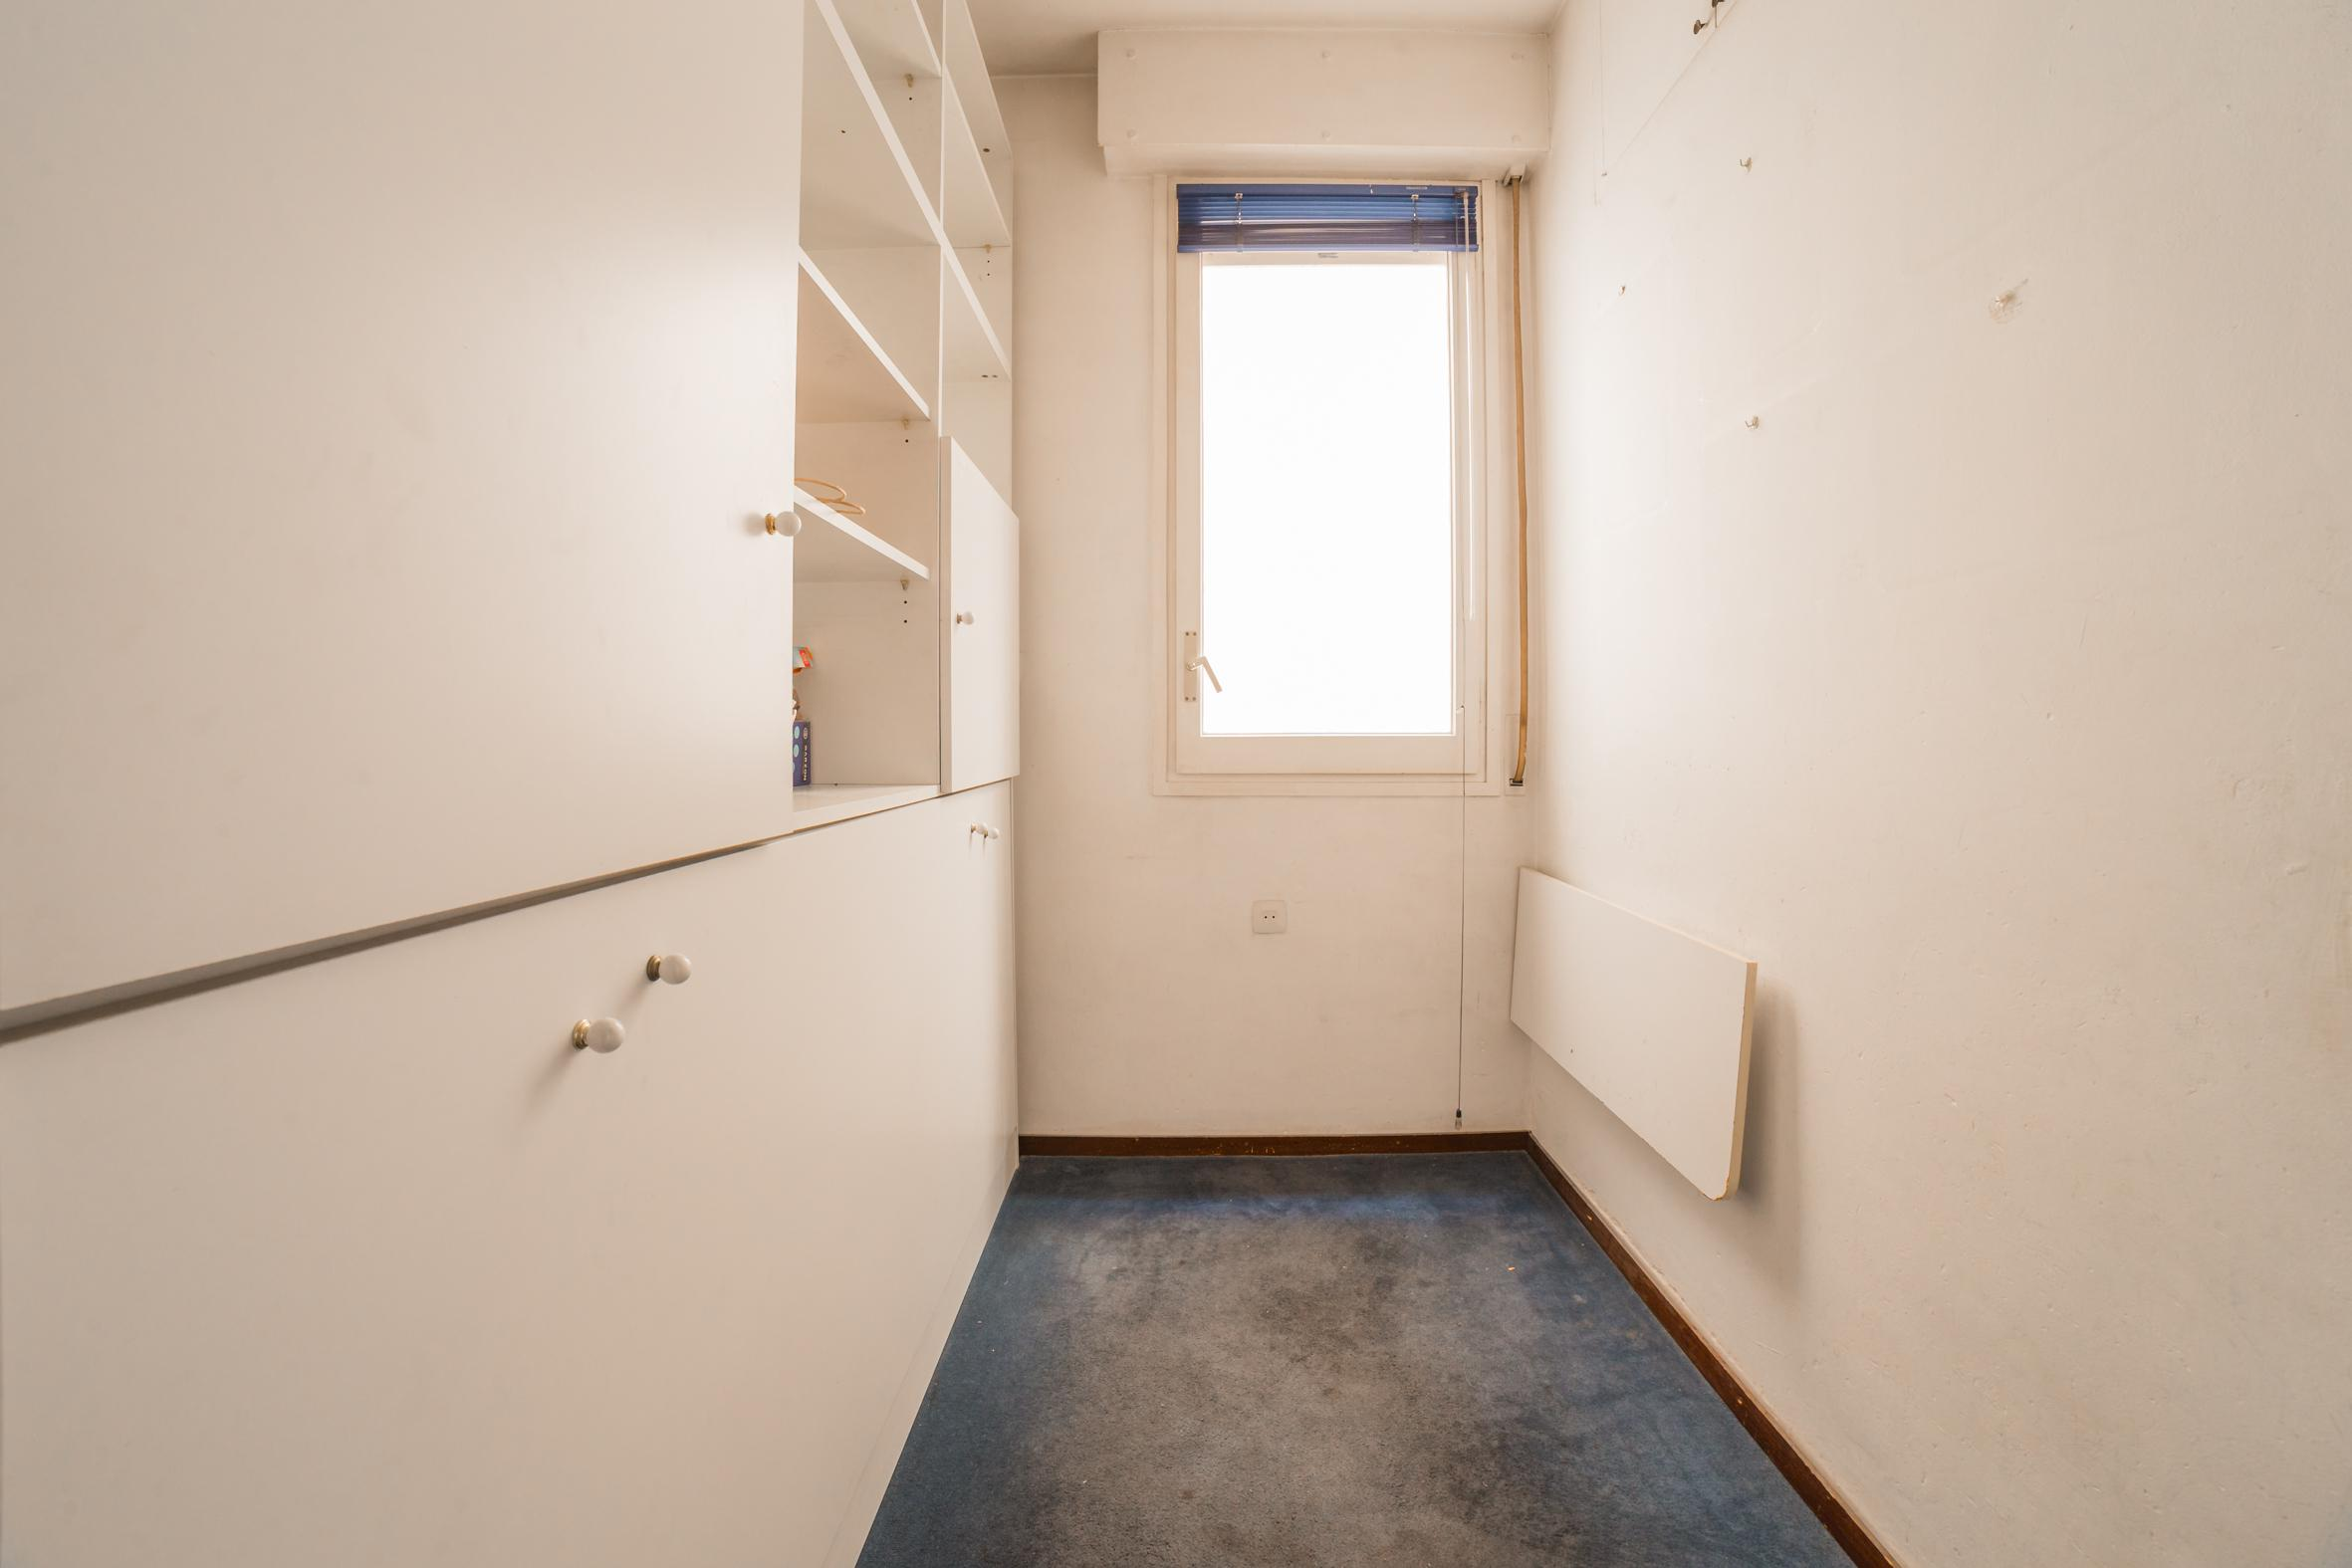 248988 Flat for sale in Les Corts, Les Corts 18